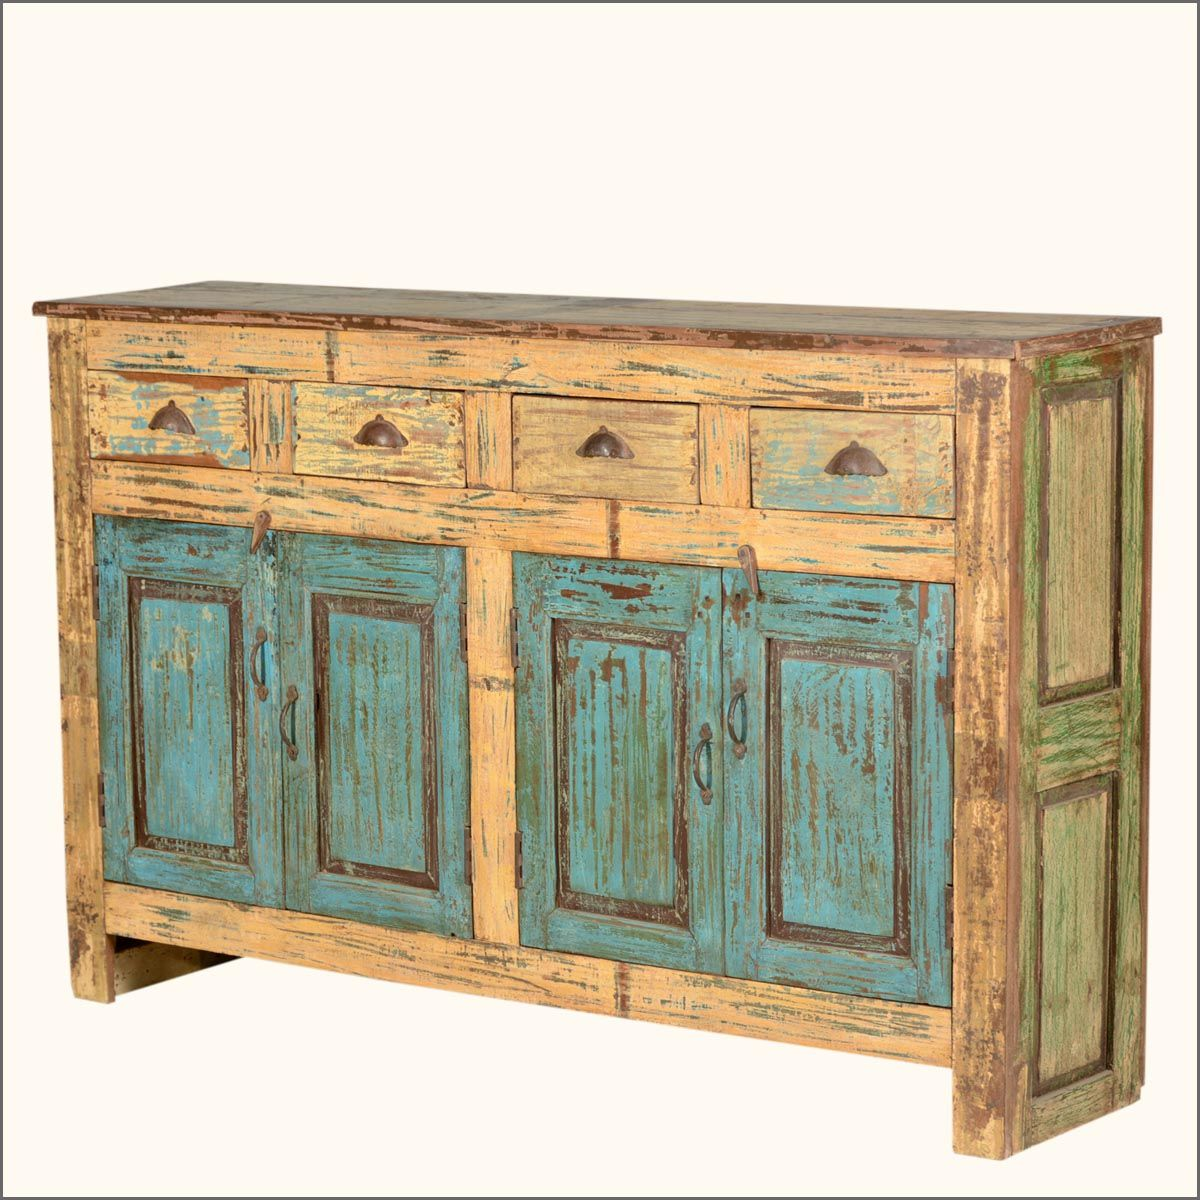 Add The Natural Colors Of Old Reclaimed Wood To Your Home Decor